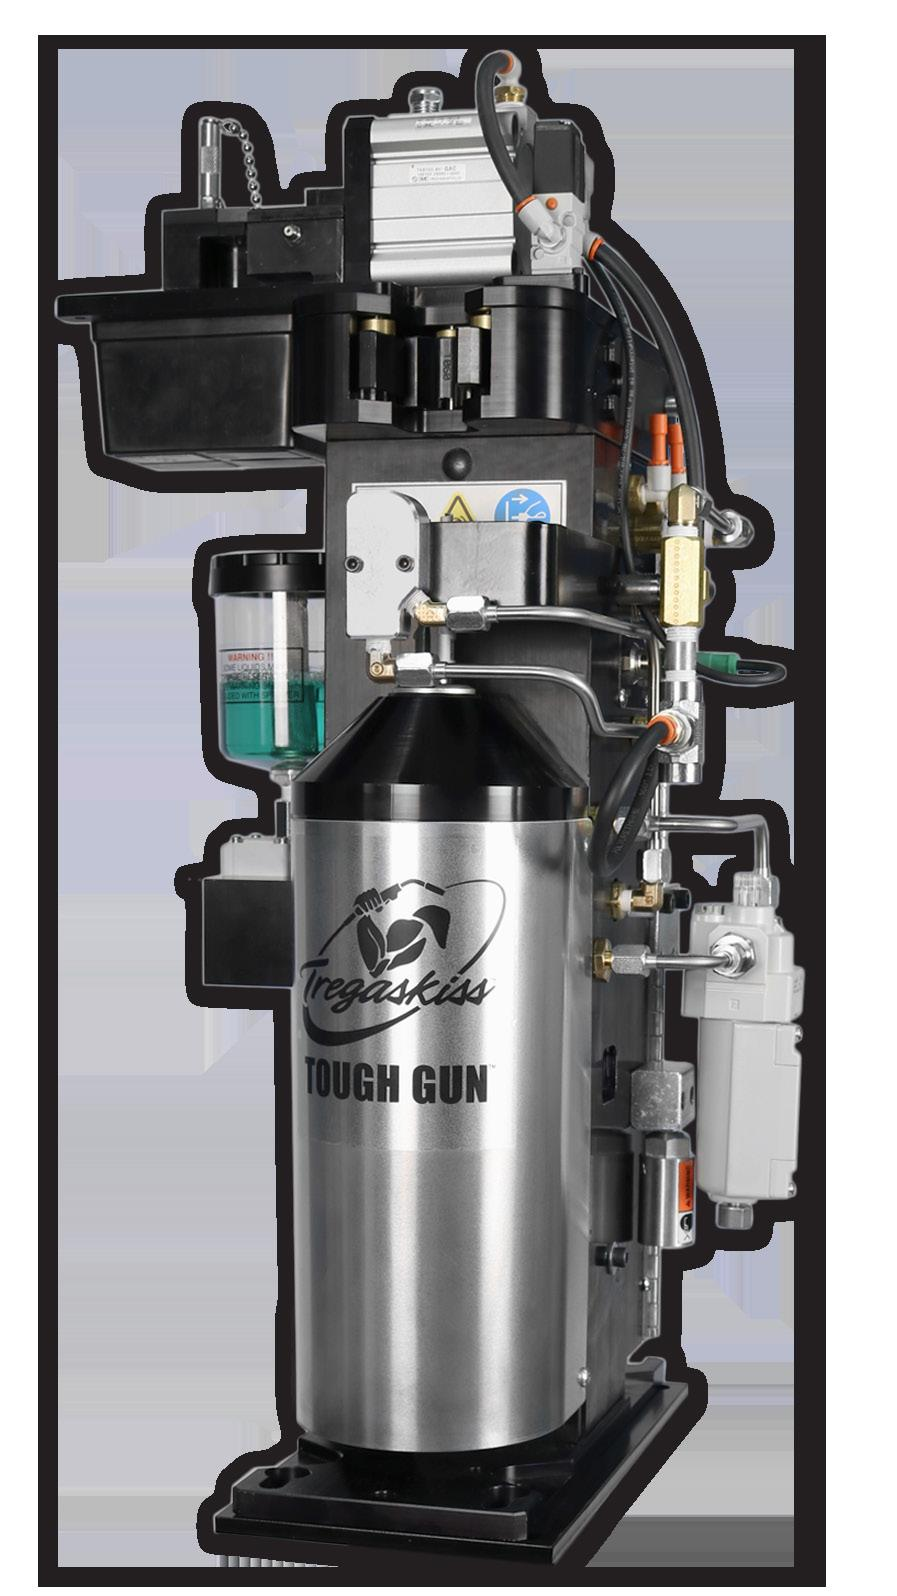 TOUGH GUN TT3 Reamer Nozzle Cleaning Station Issued May 2017 Index No. TT3/1.3 Robotic MIG (GMAW) Welding Peripheral Quick Specs Applications Automotive Fabrication Manufacturing Dimensions L: 13.